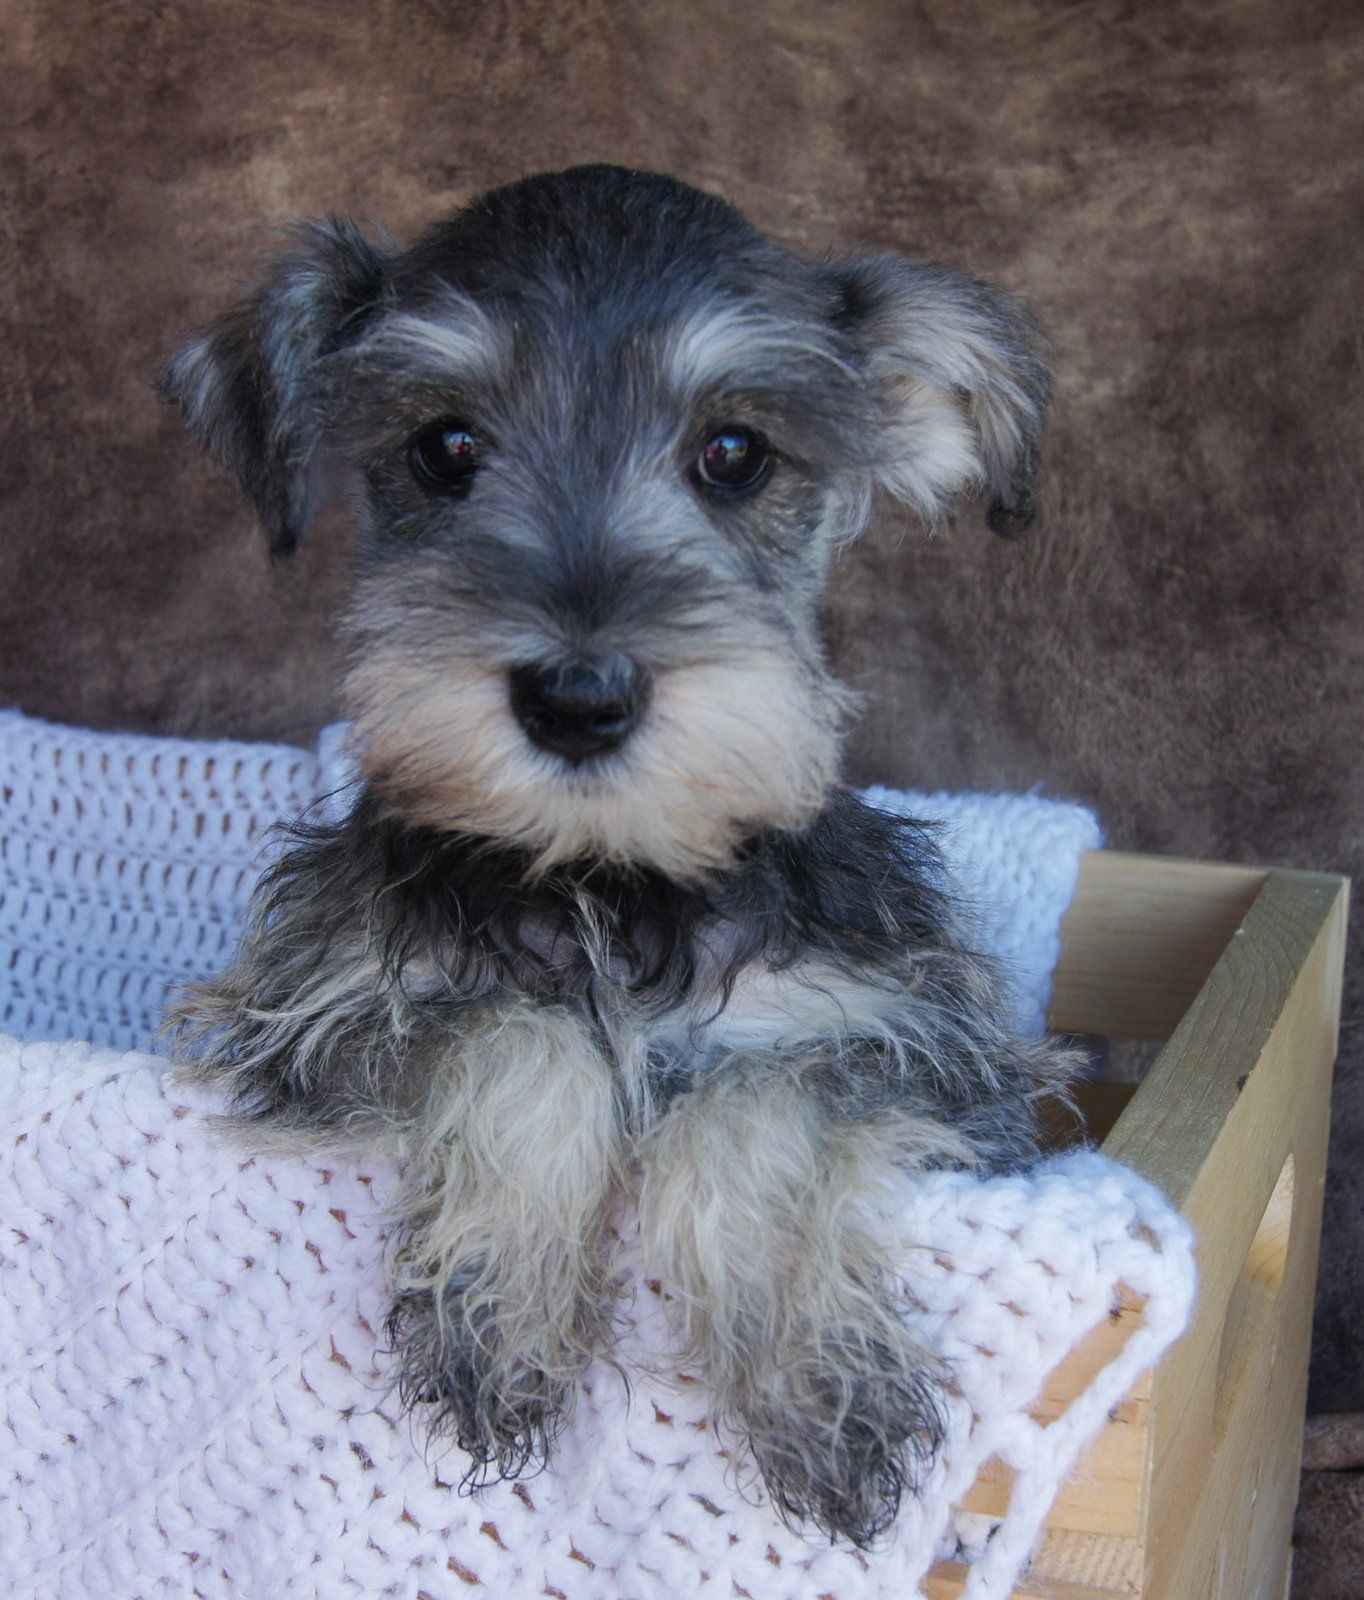 Salt Amd Pepper Miniature Schnauzer Puppies For Sale Schnauzer Puppy Miniature Schnauzer Puppies Schnauzer Dogs